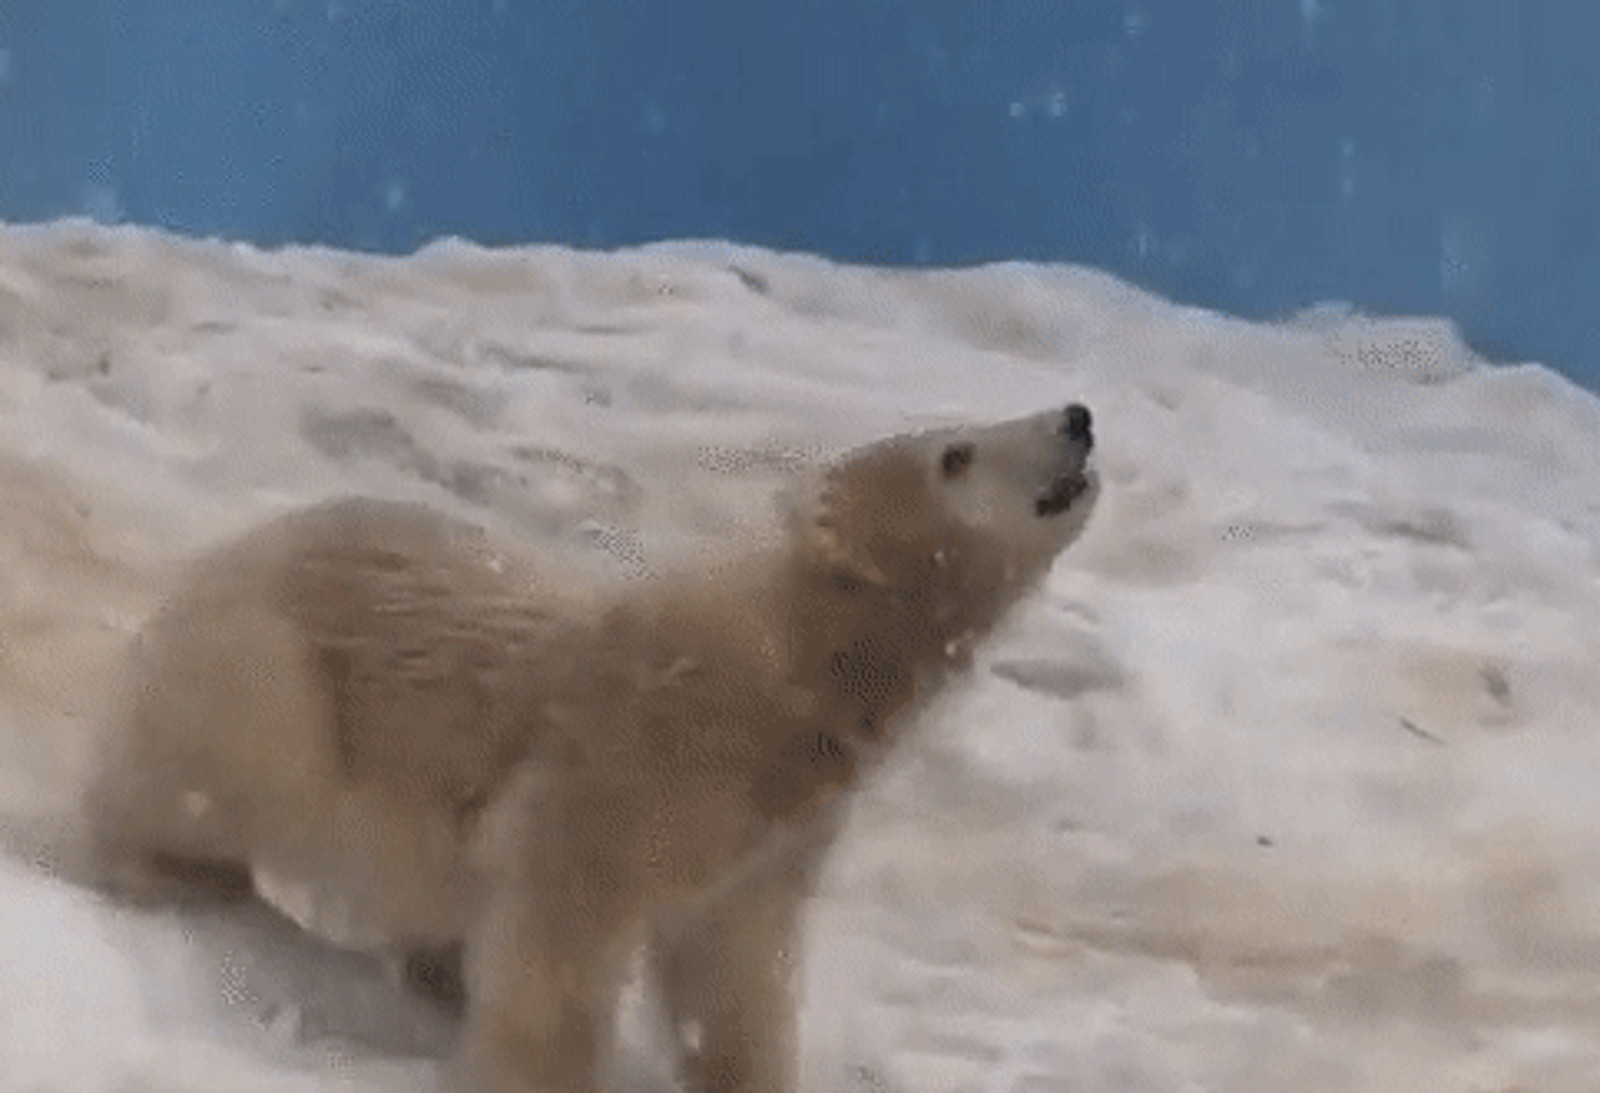 Baby Polar Bear Catching Snowflakes Goes From Cute to Disturbing Thanks to One Fact